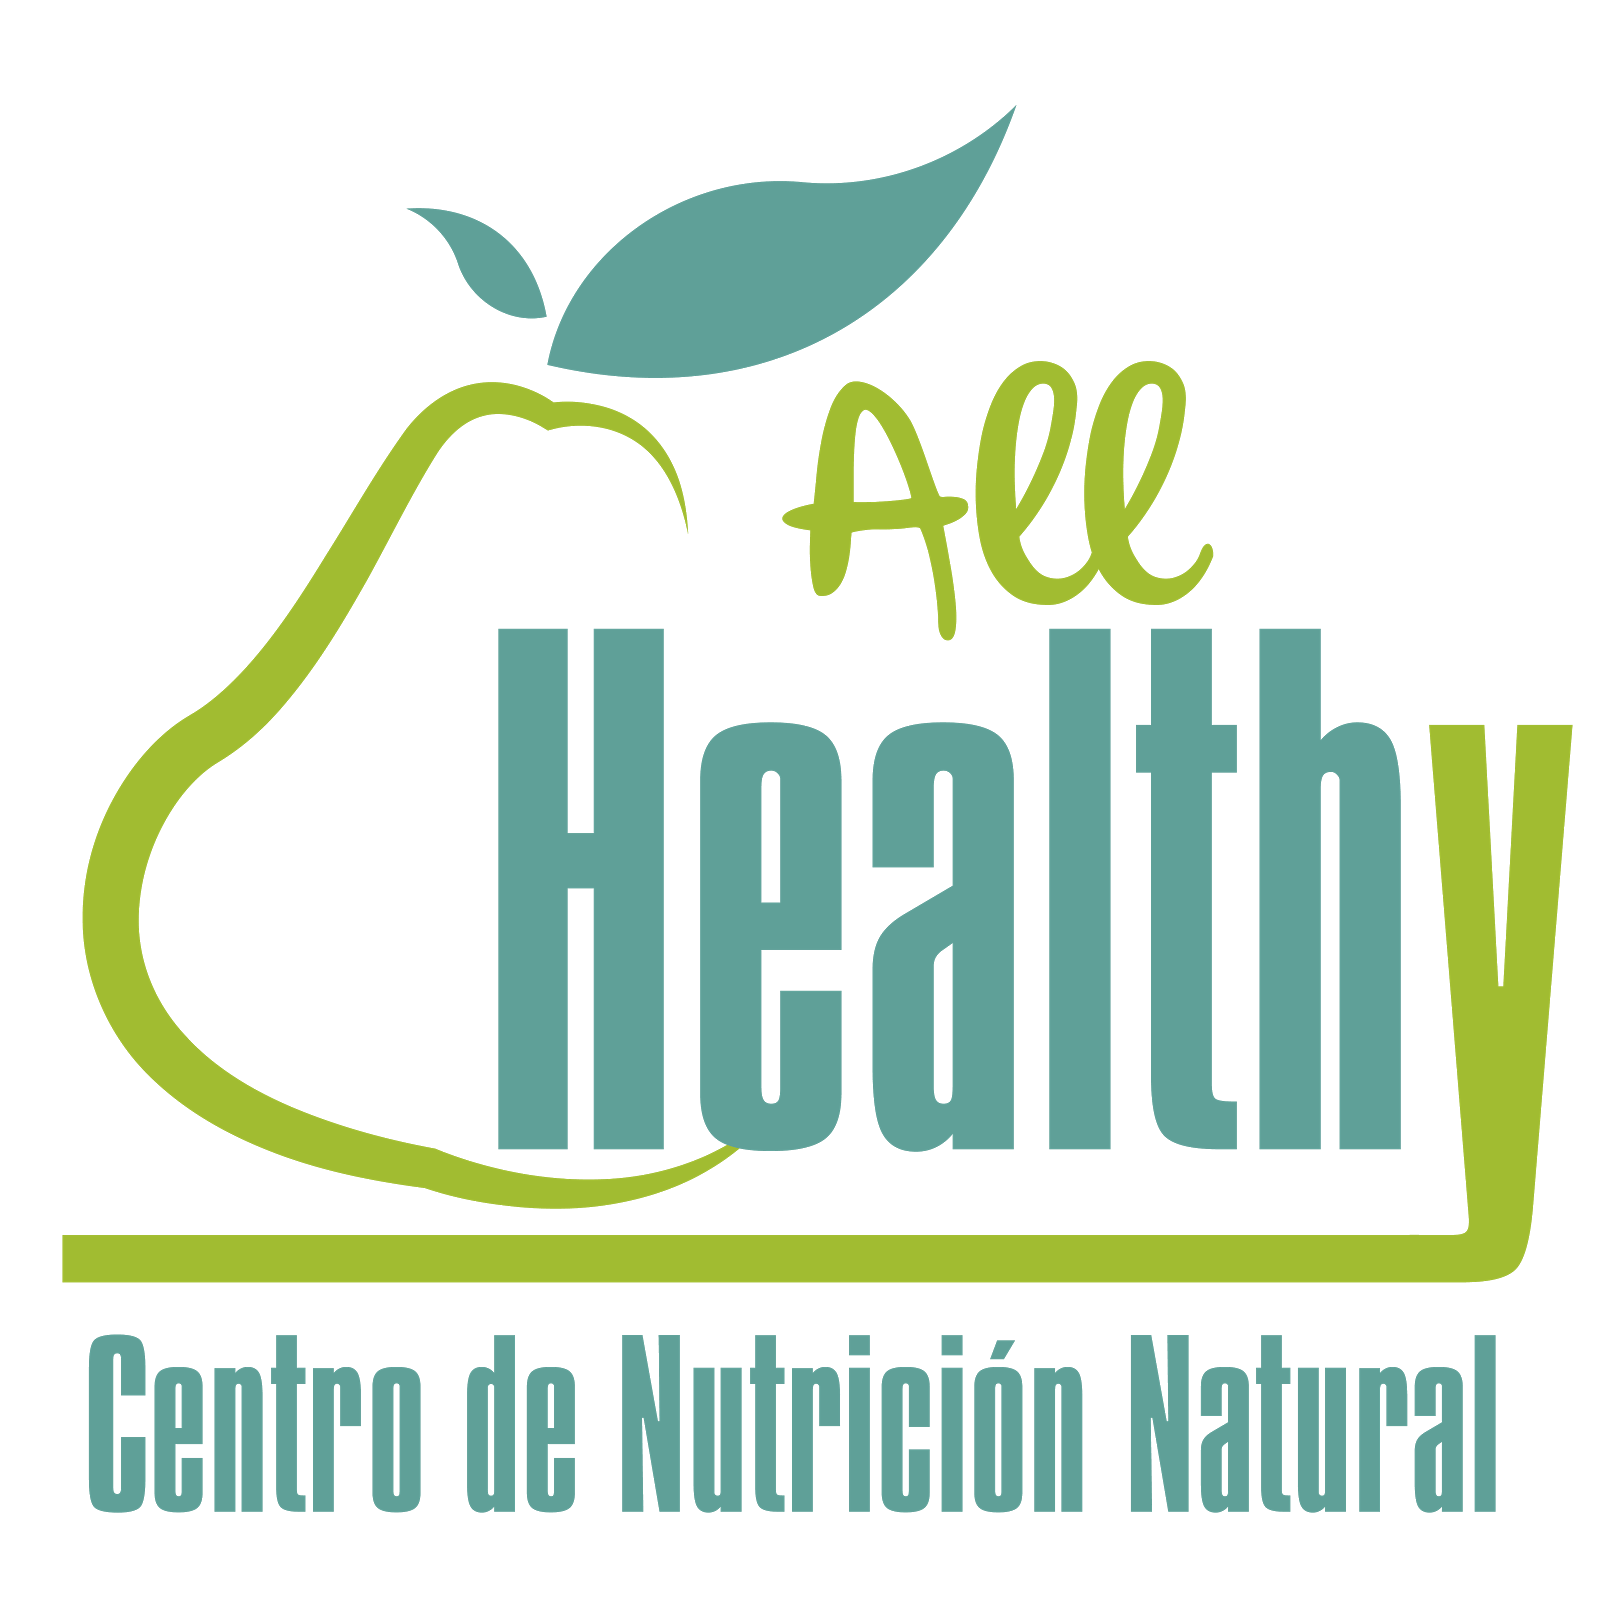 All Healthy - Nutrición